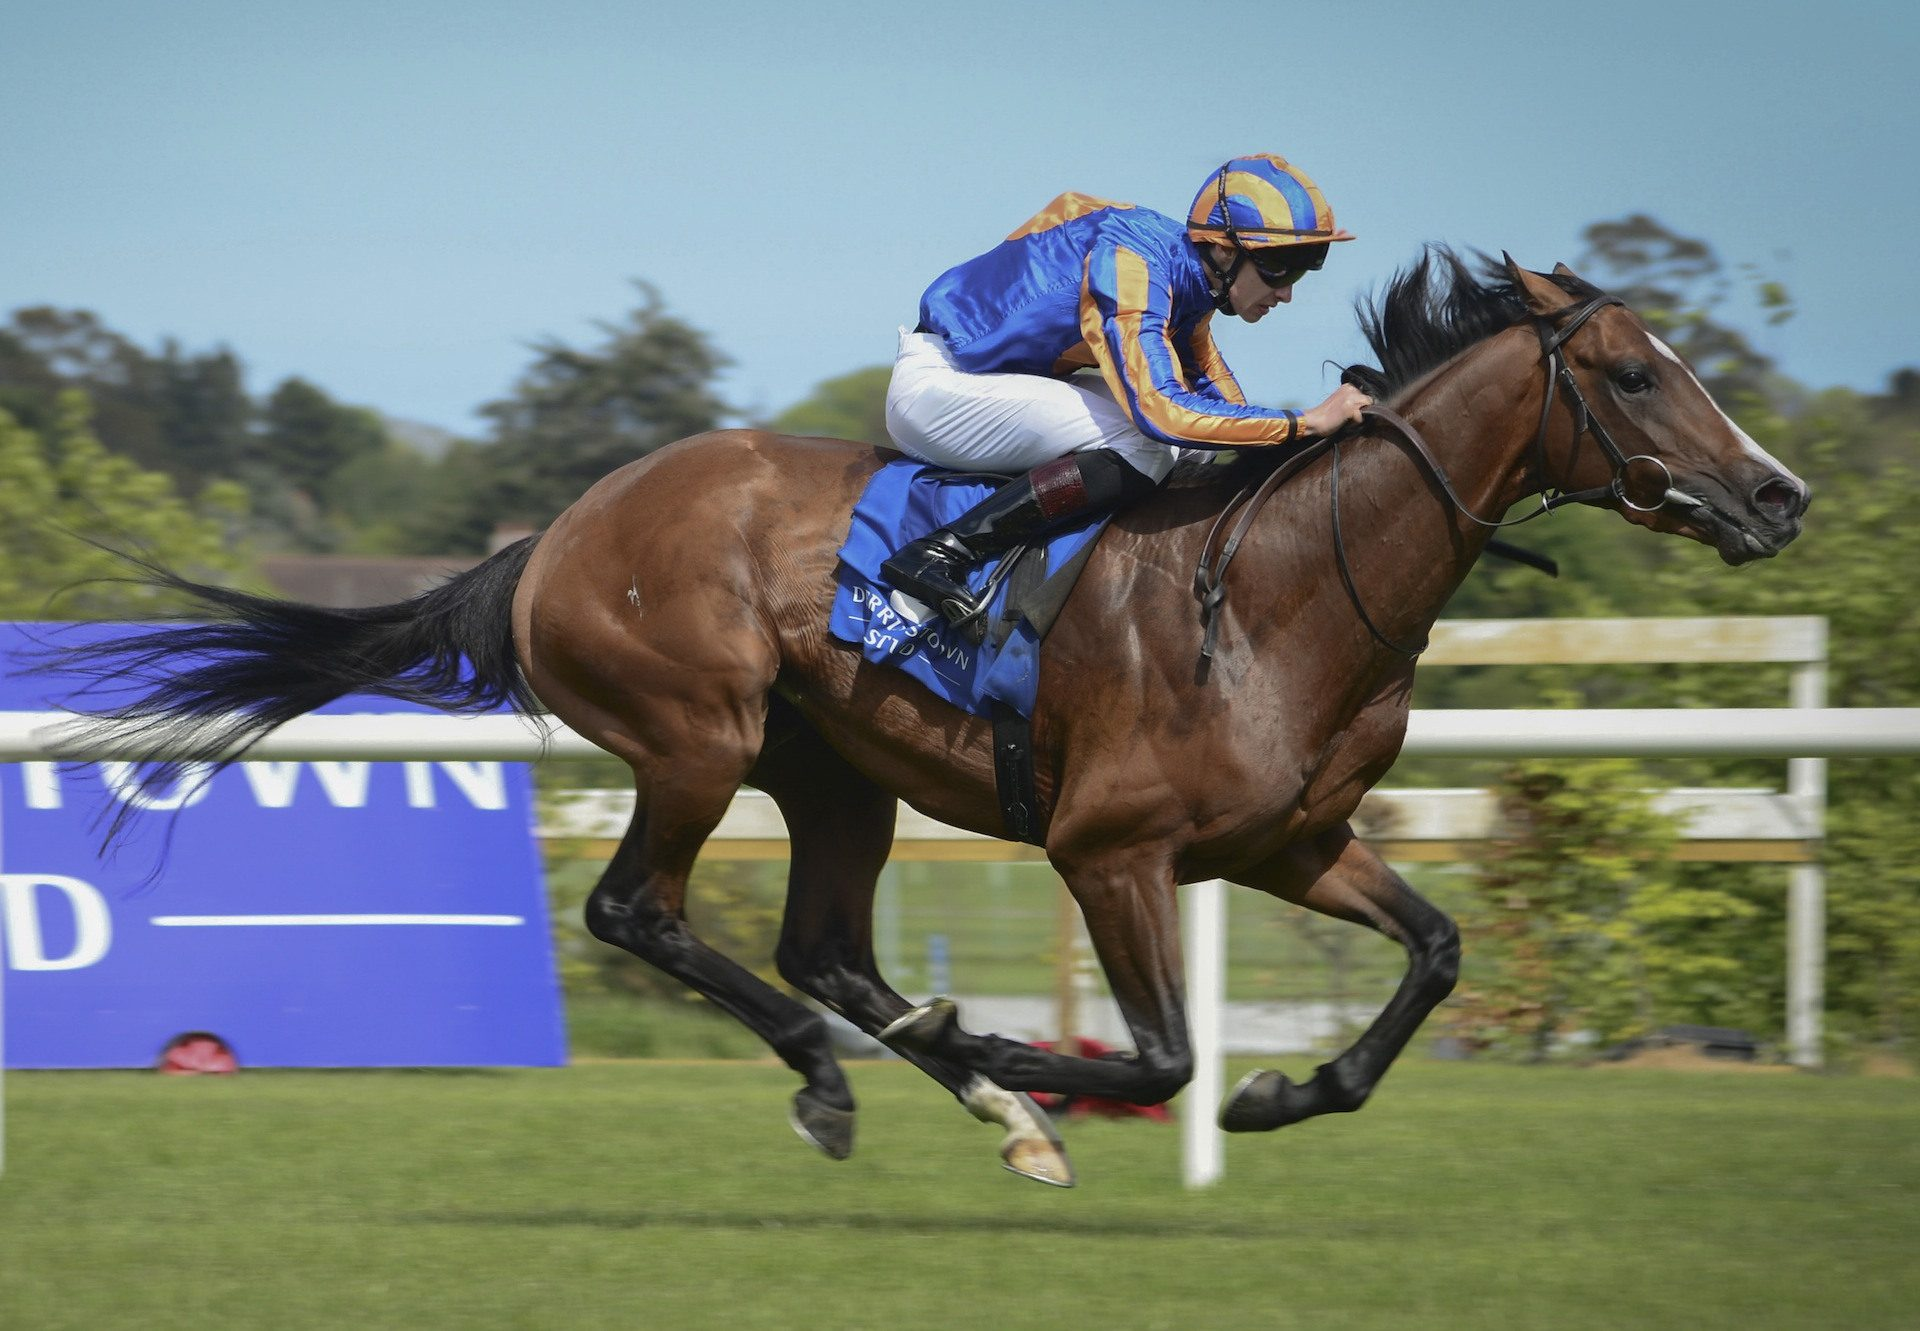 Broome (Australia) Wins The Group 3 Derby Trial At Leopardstown